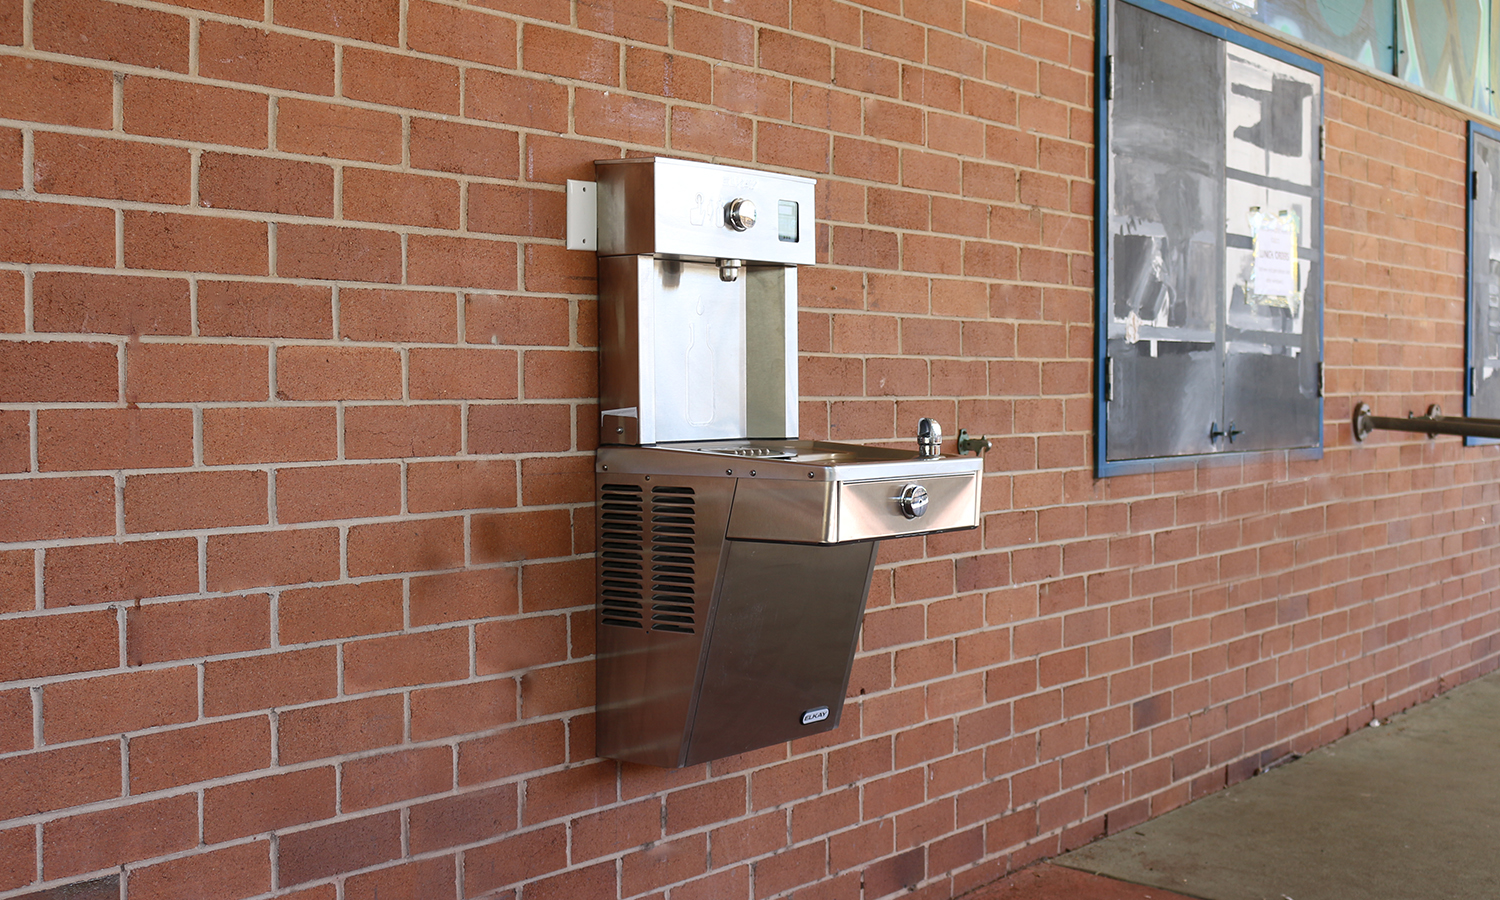 an installed Elkay EZH20 Wall Mounted Drinking Fountain and Water Bottle Filling Station